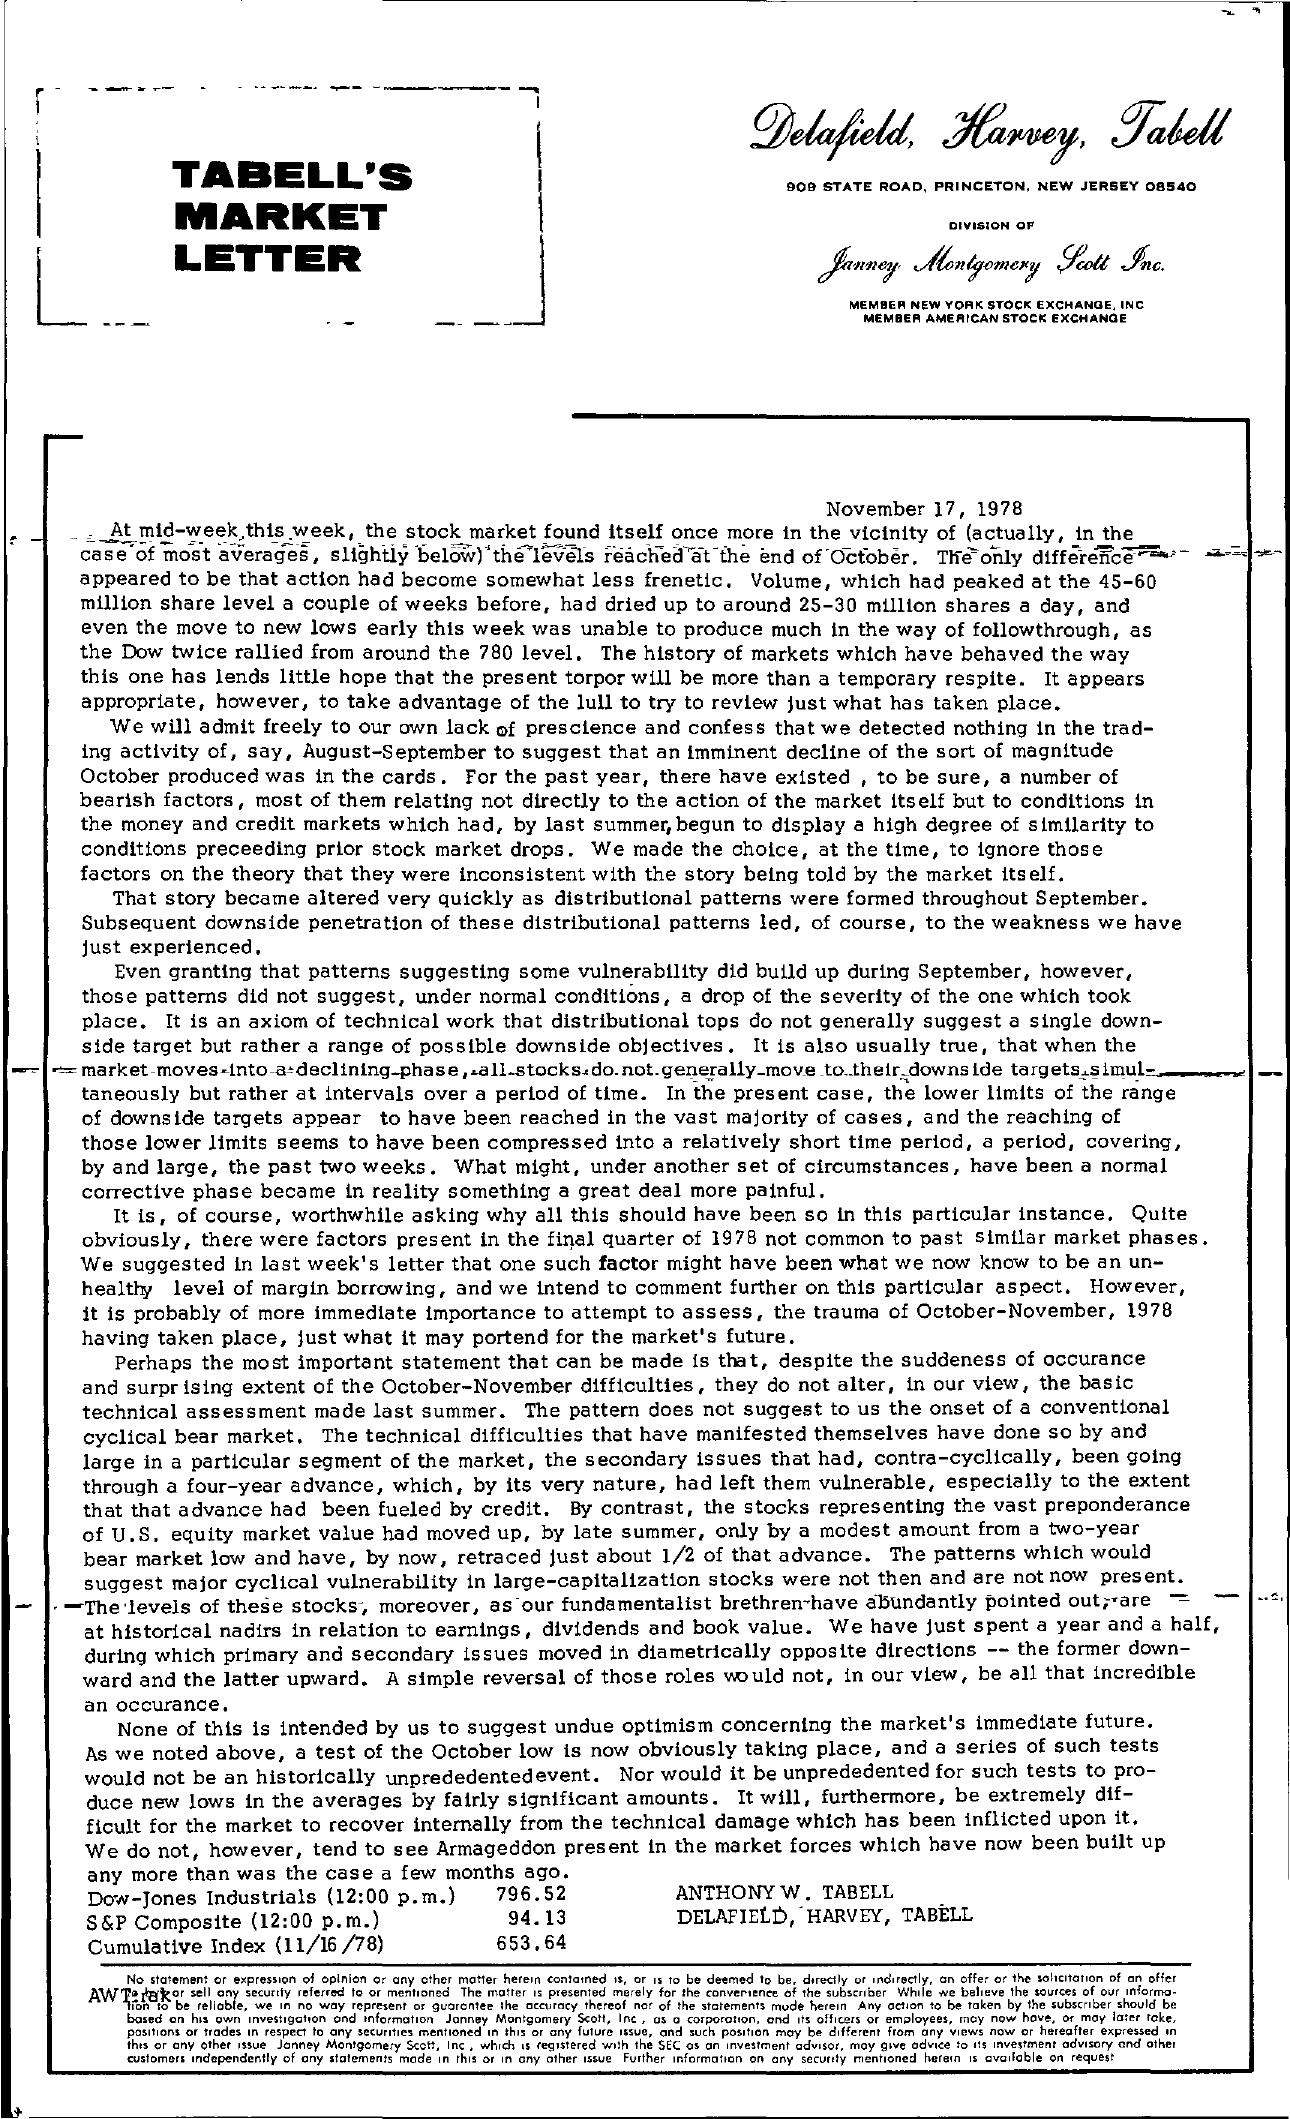 Tabell's Market Letter - November 17, 1978 page 1